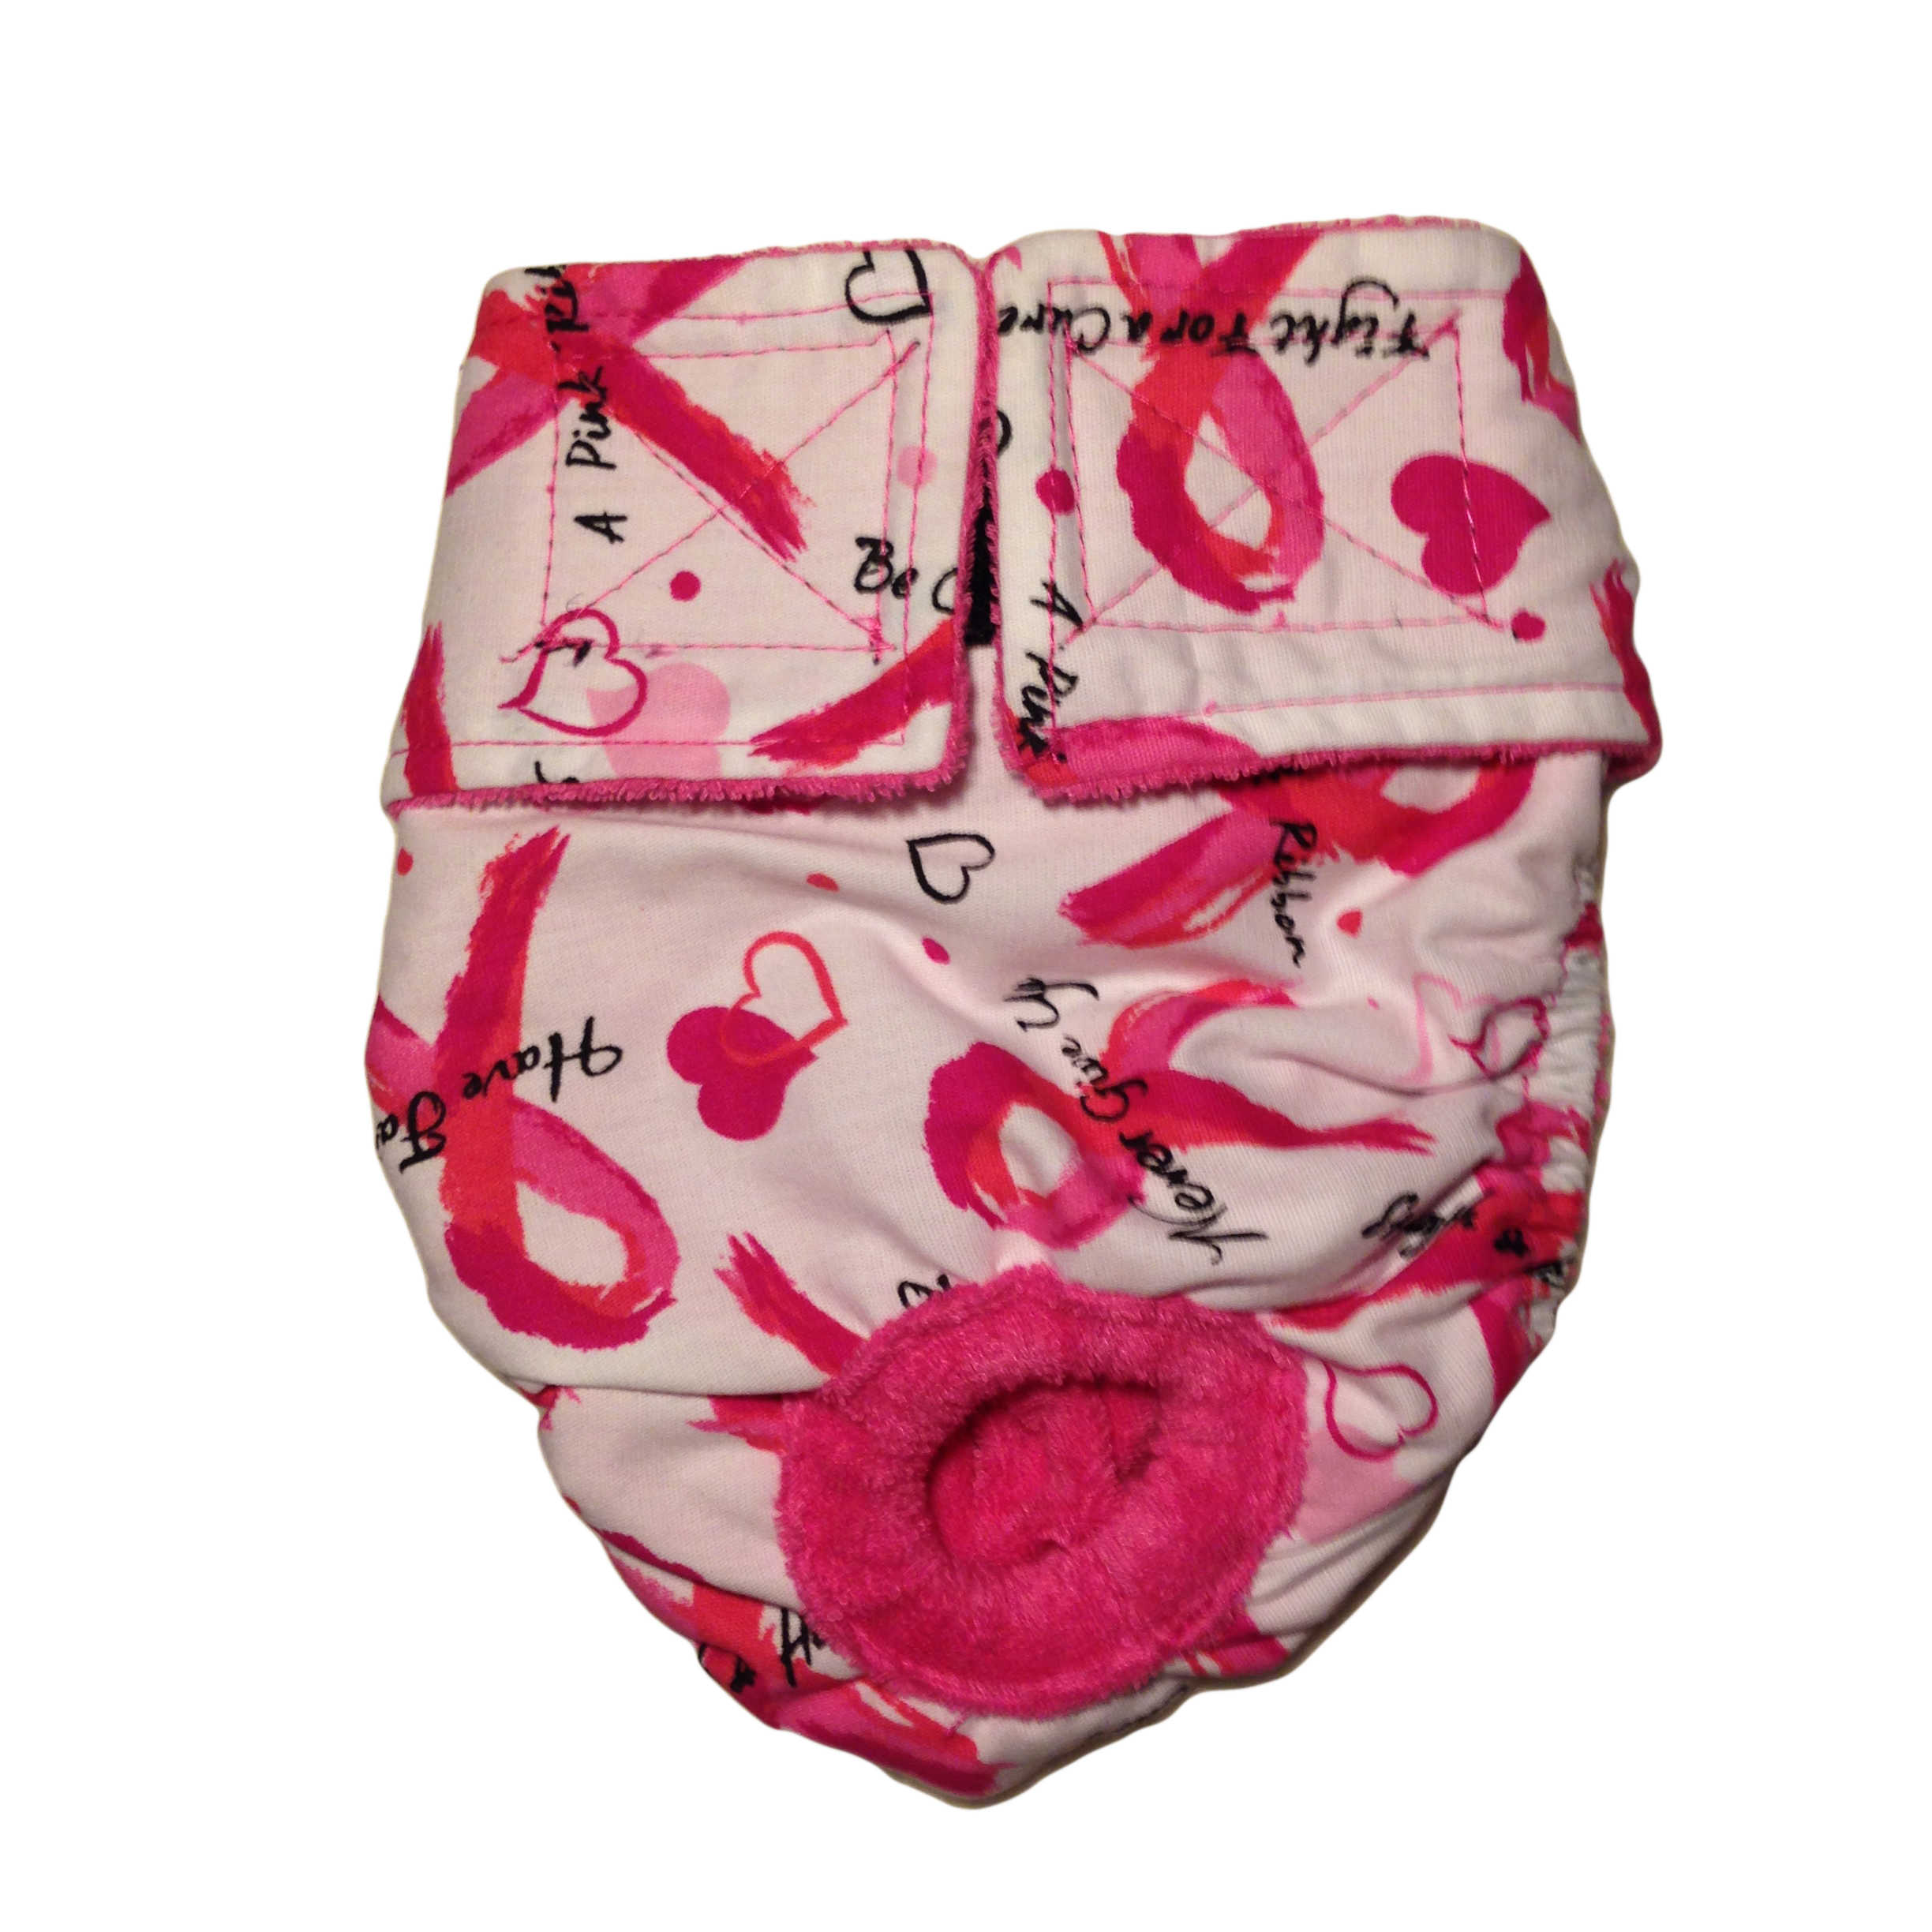 Barkertime Pink Ribbon Washable Cat Diaper Made In Usa